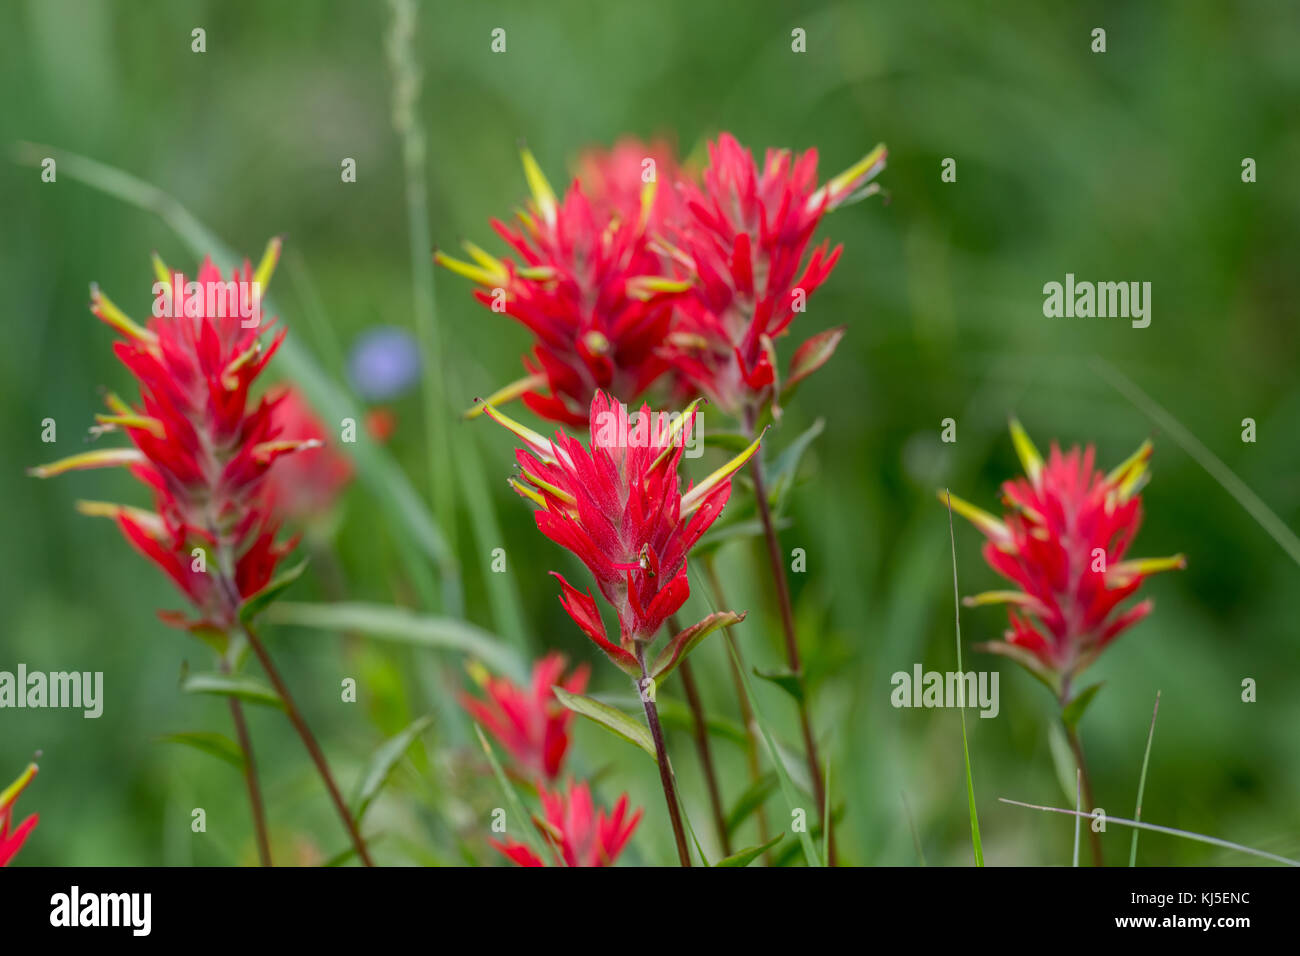 Red Indian Paint Brush Group Close Up in alpine field - Stock Image